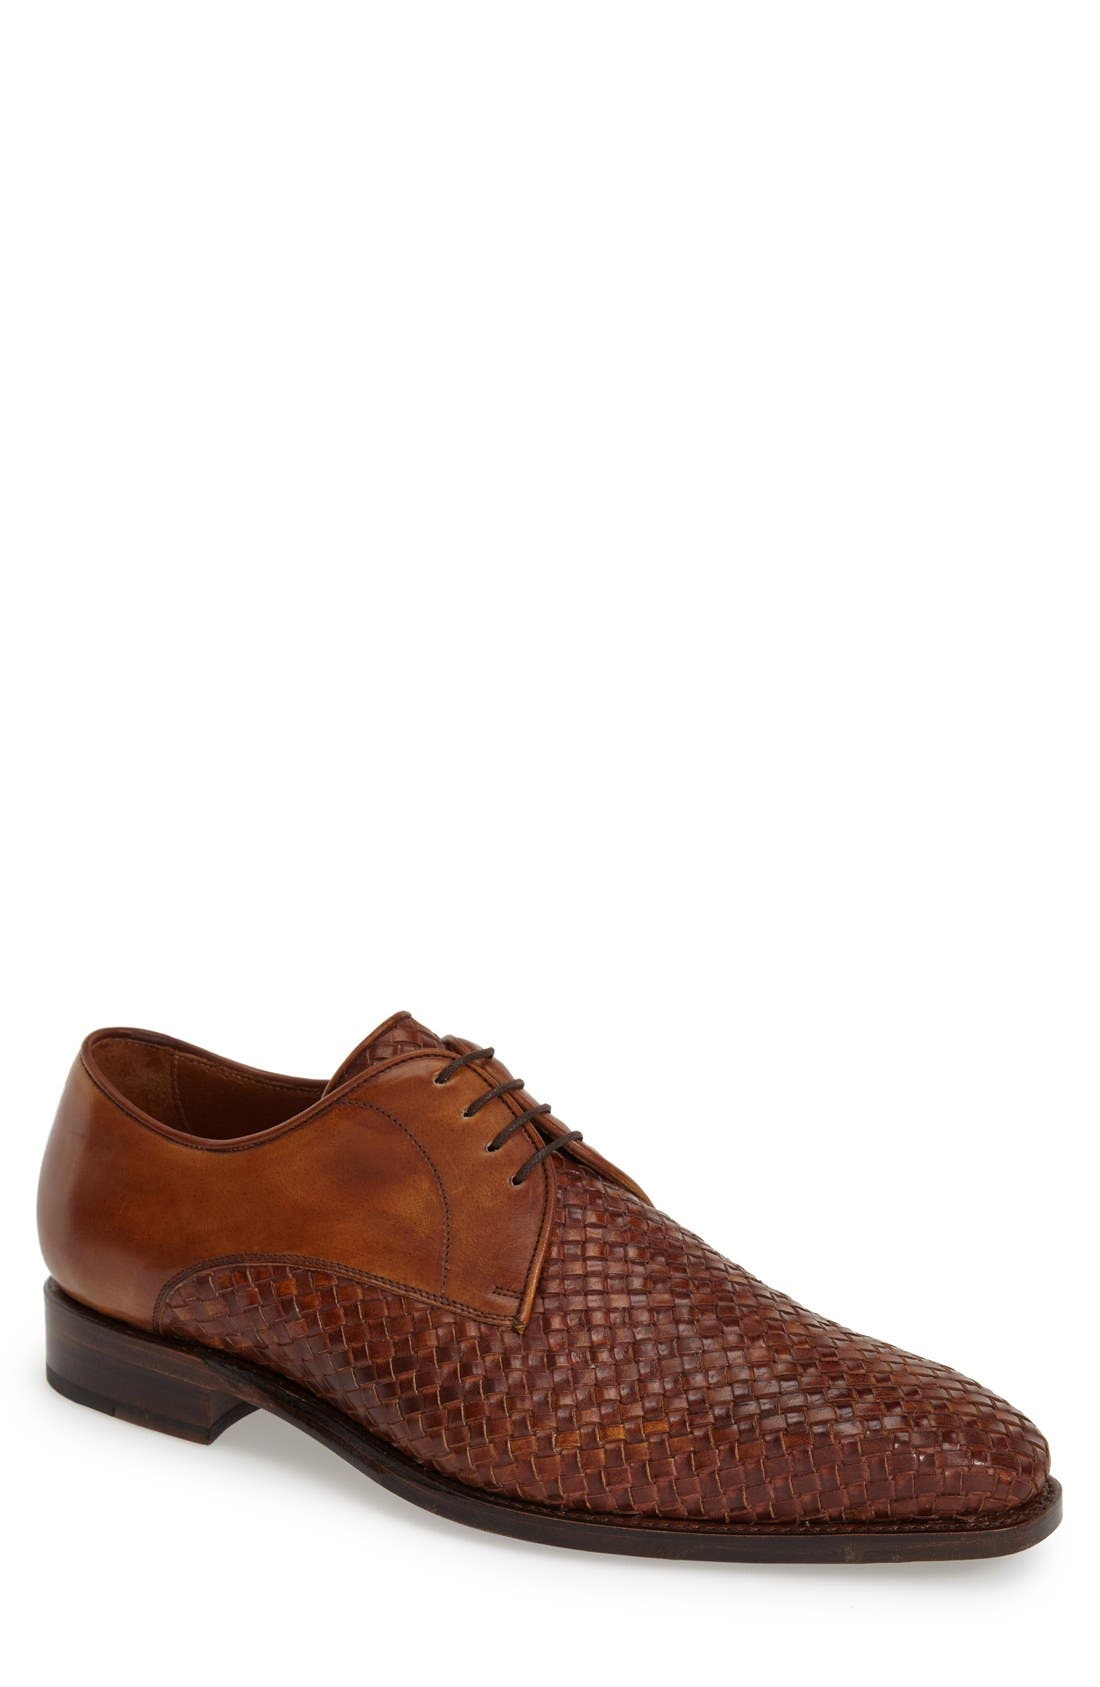 'Savannah' Woven Derby,                             Main thumbnail 1, color,                             Brown